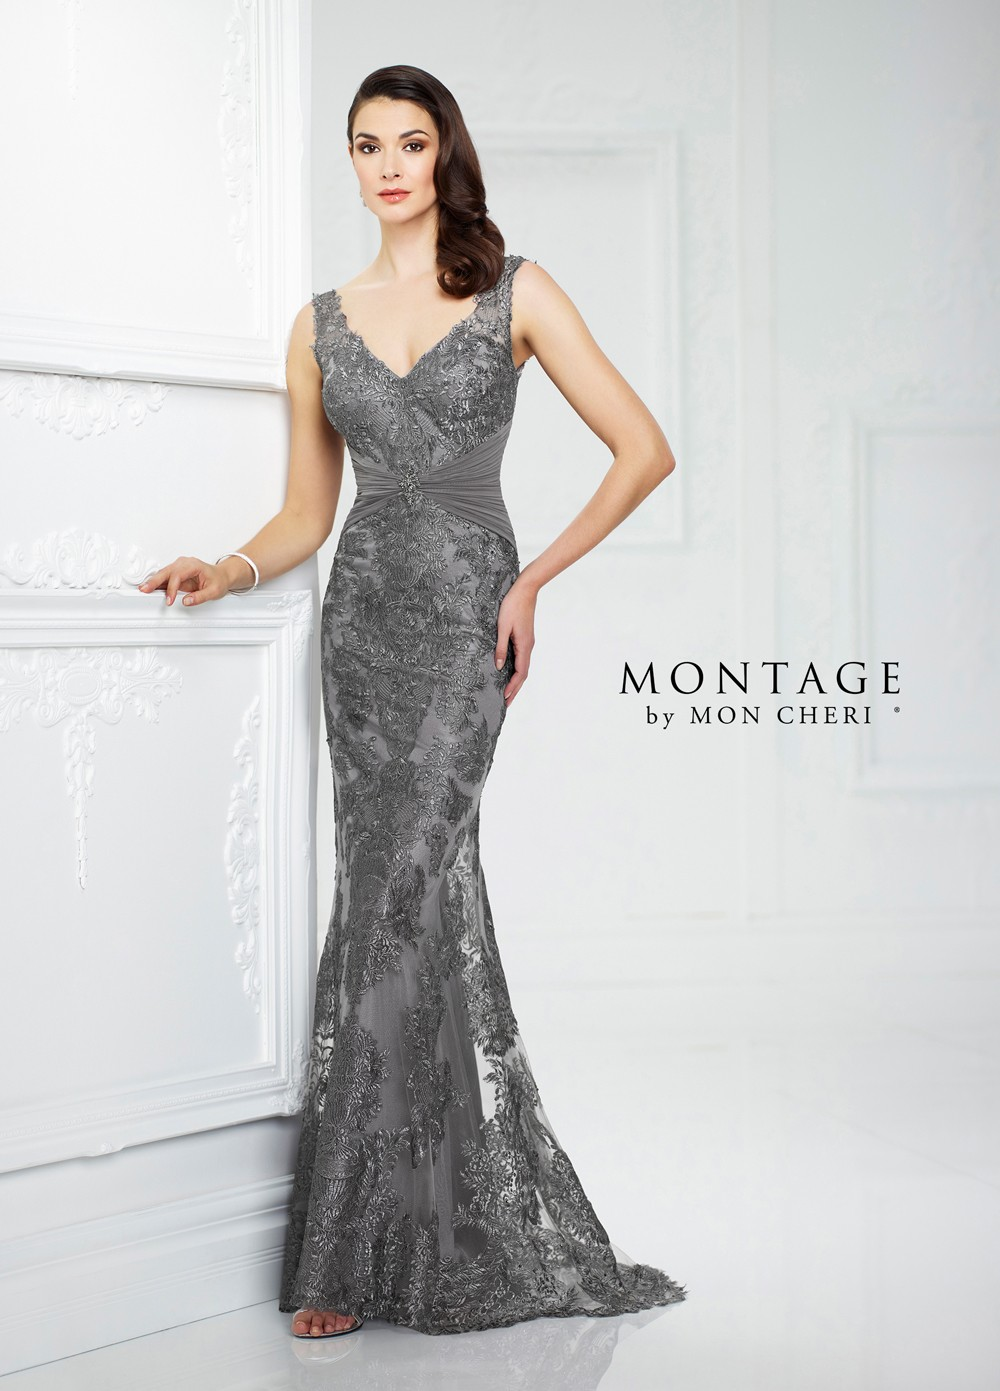 d1258442ac Montage by Mon Cheri 217942 in Stock Dress - MadameBridal.com